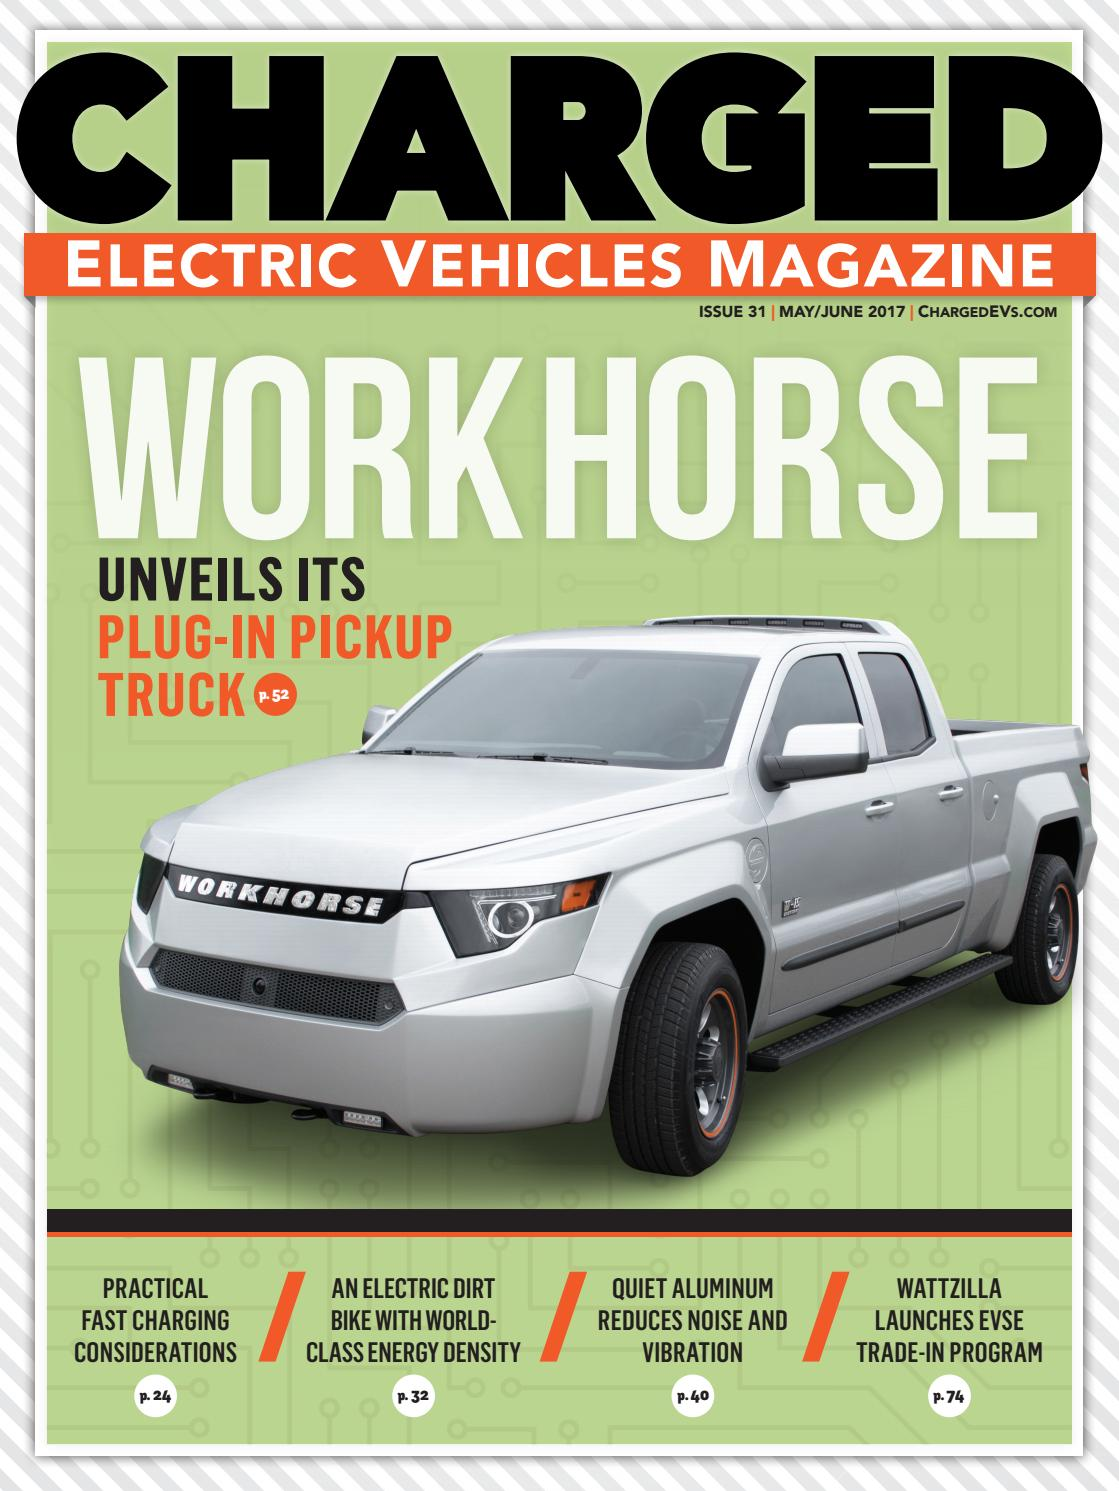 2a5a570df5 CHARGED Electric Vehicles Magazine - Issue 31 MAY JUN 2017 by CHARGED  Electric Vehilces Magazine - issuu